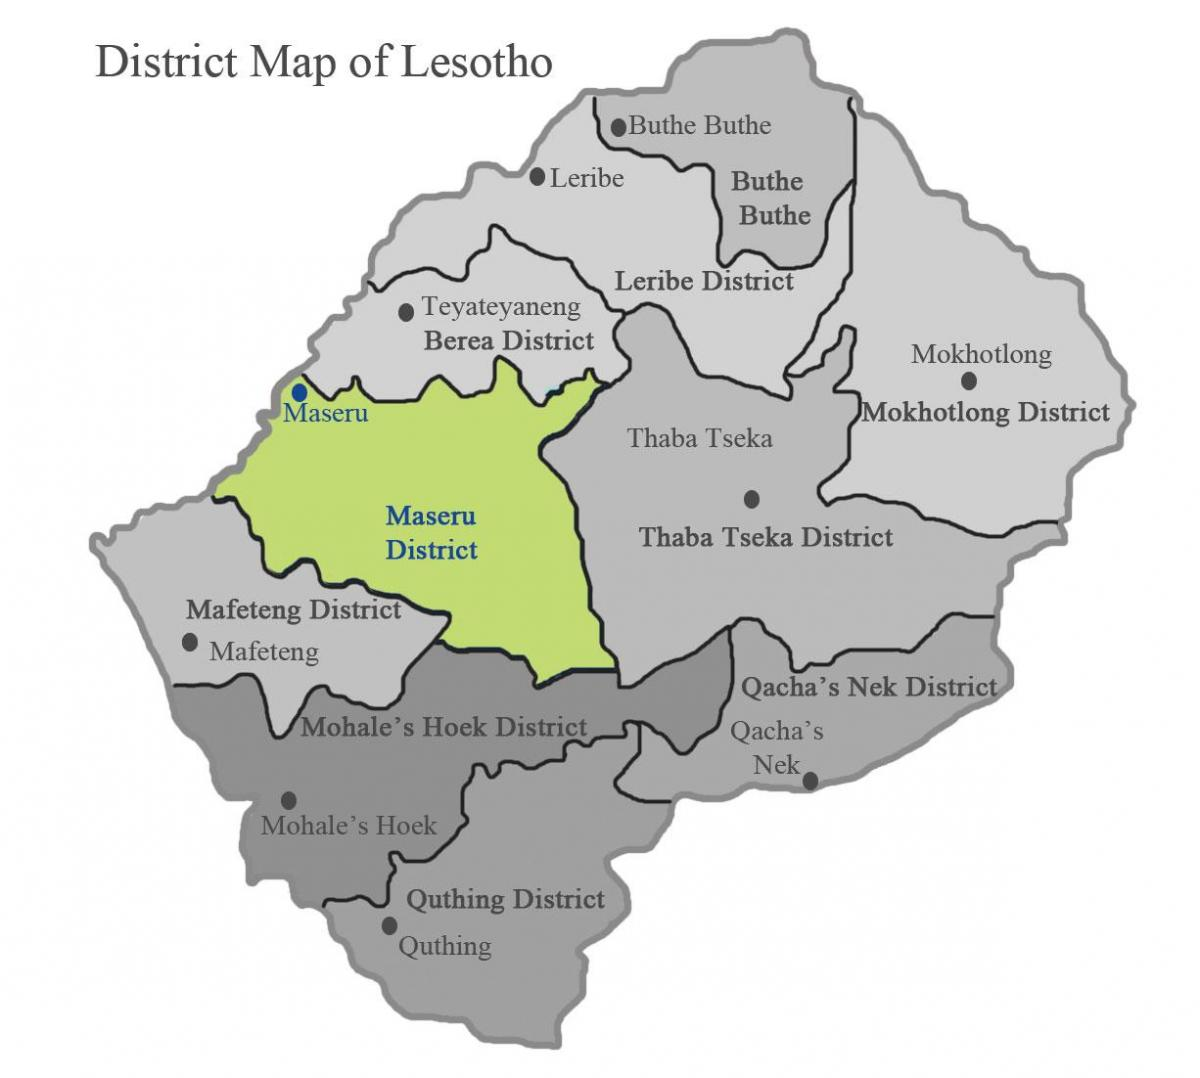 map of Lesotho showing districts